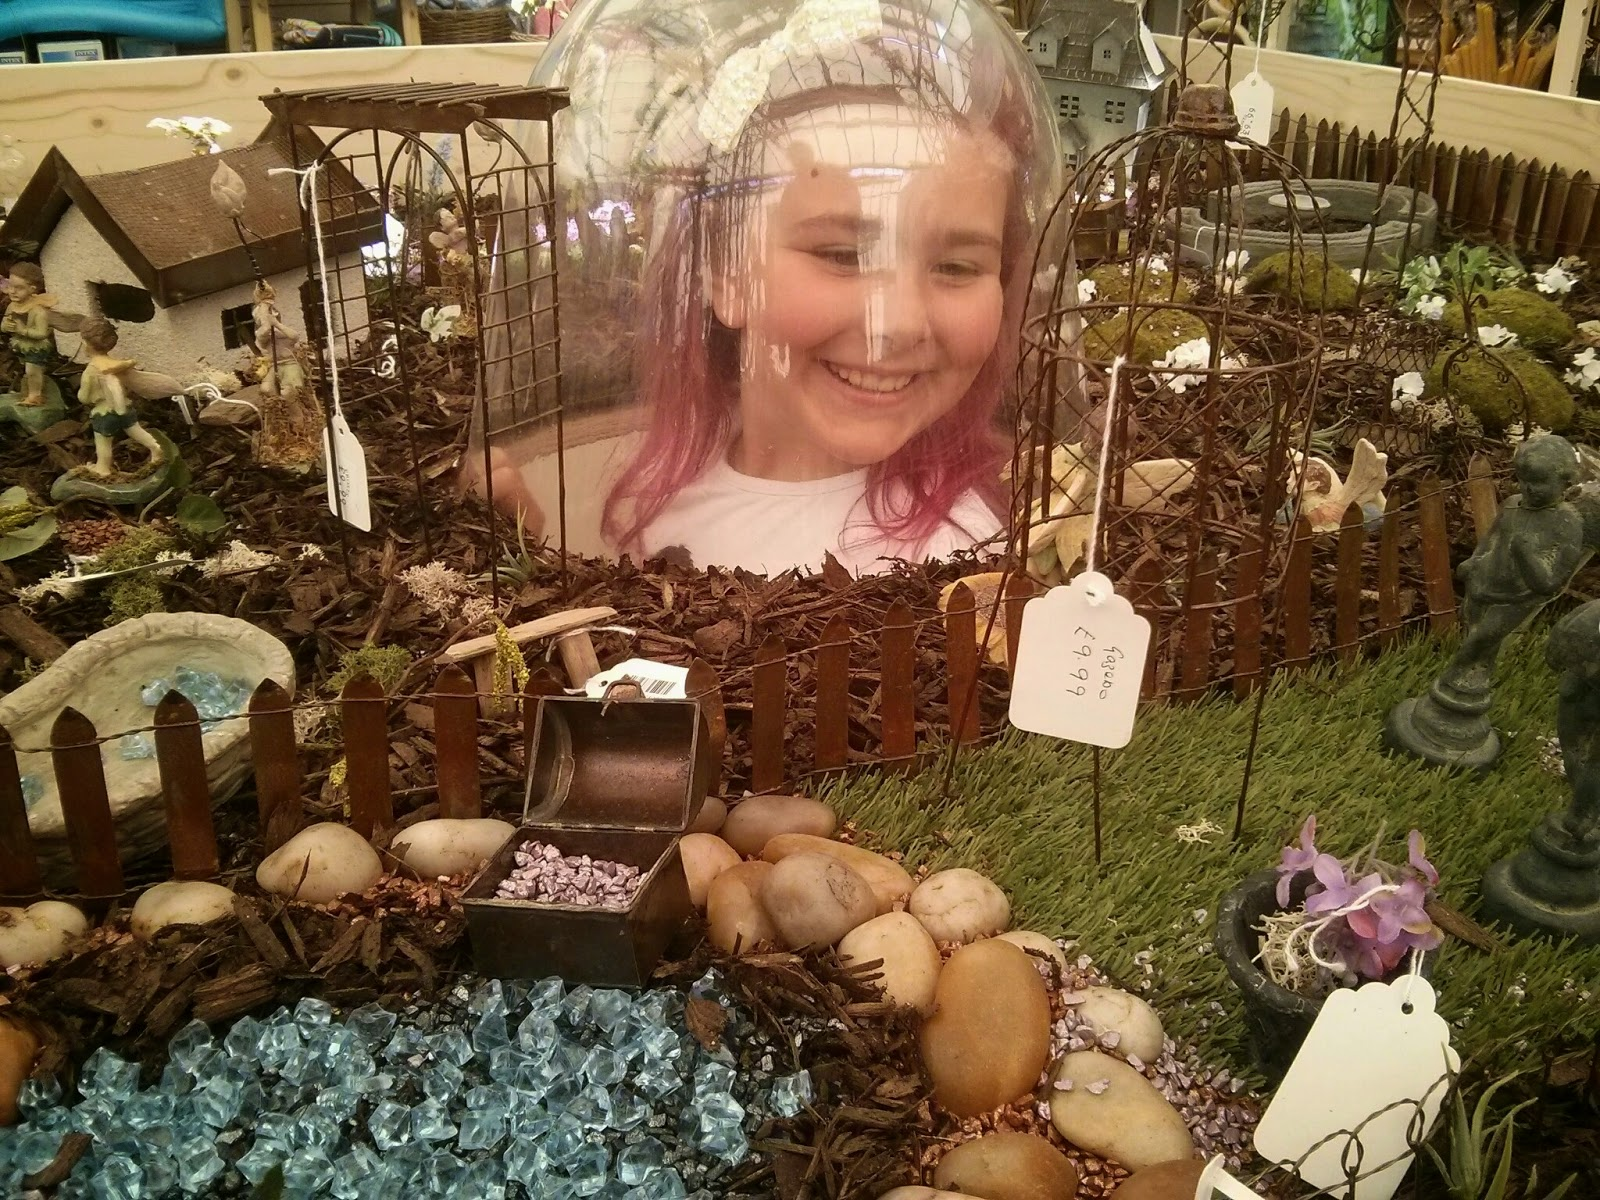 Top Ender viewing the Fairy Garden